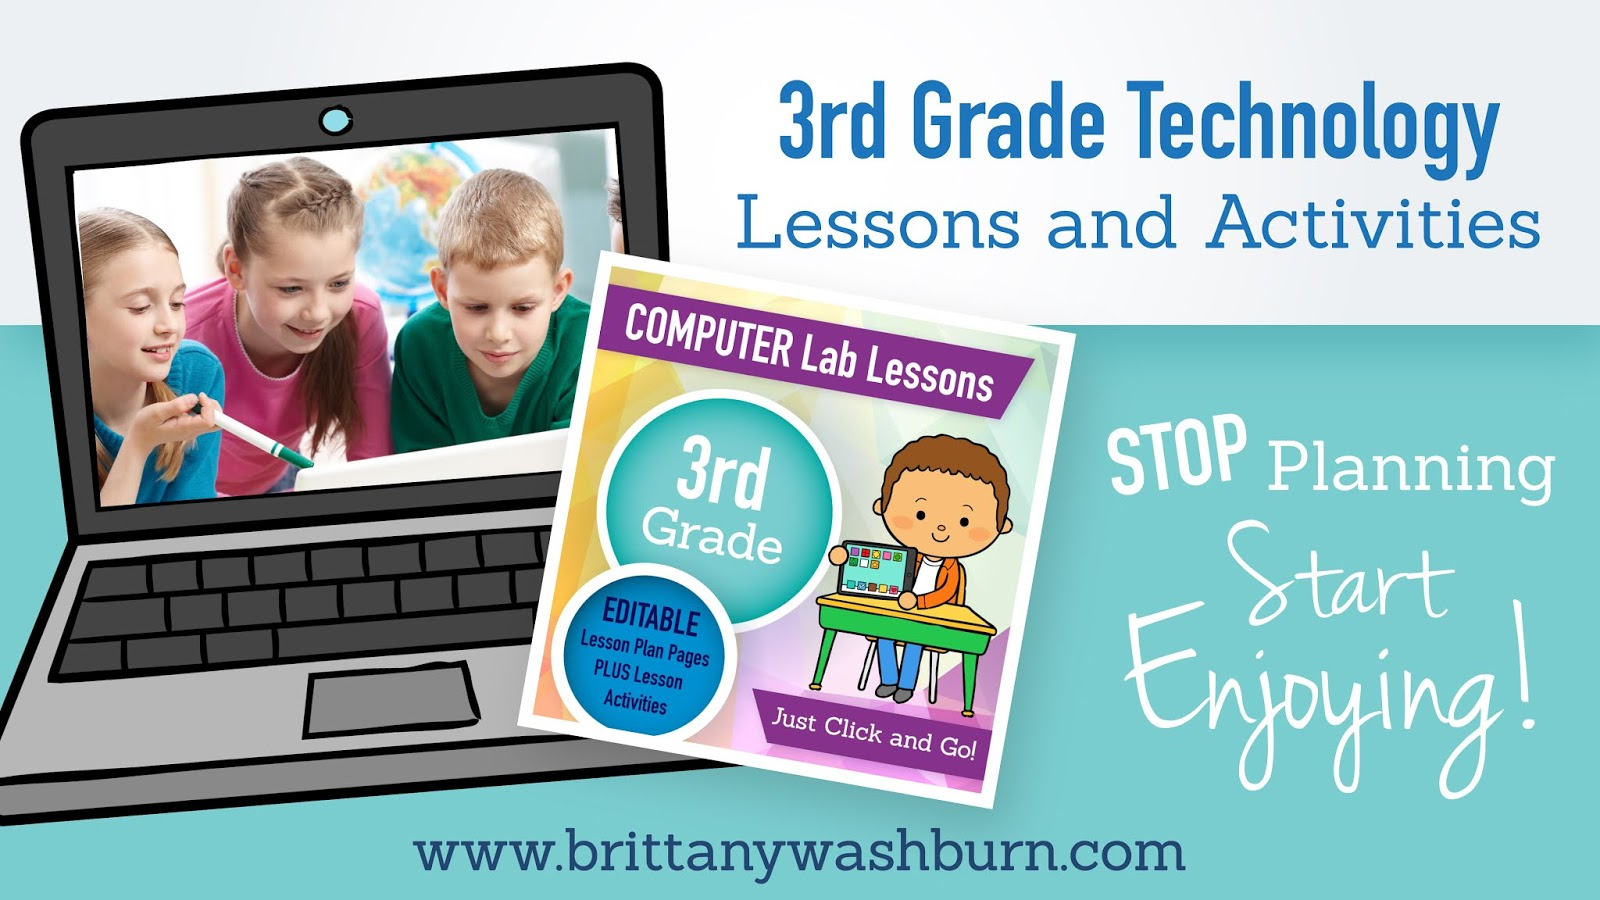 Technology Teaching Resources With Brittany Washburn 3rd